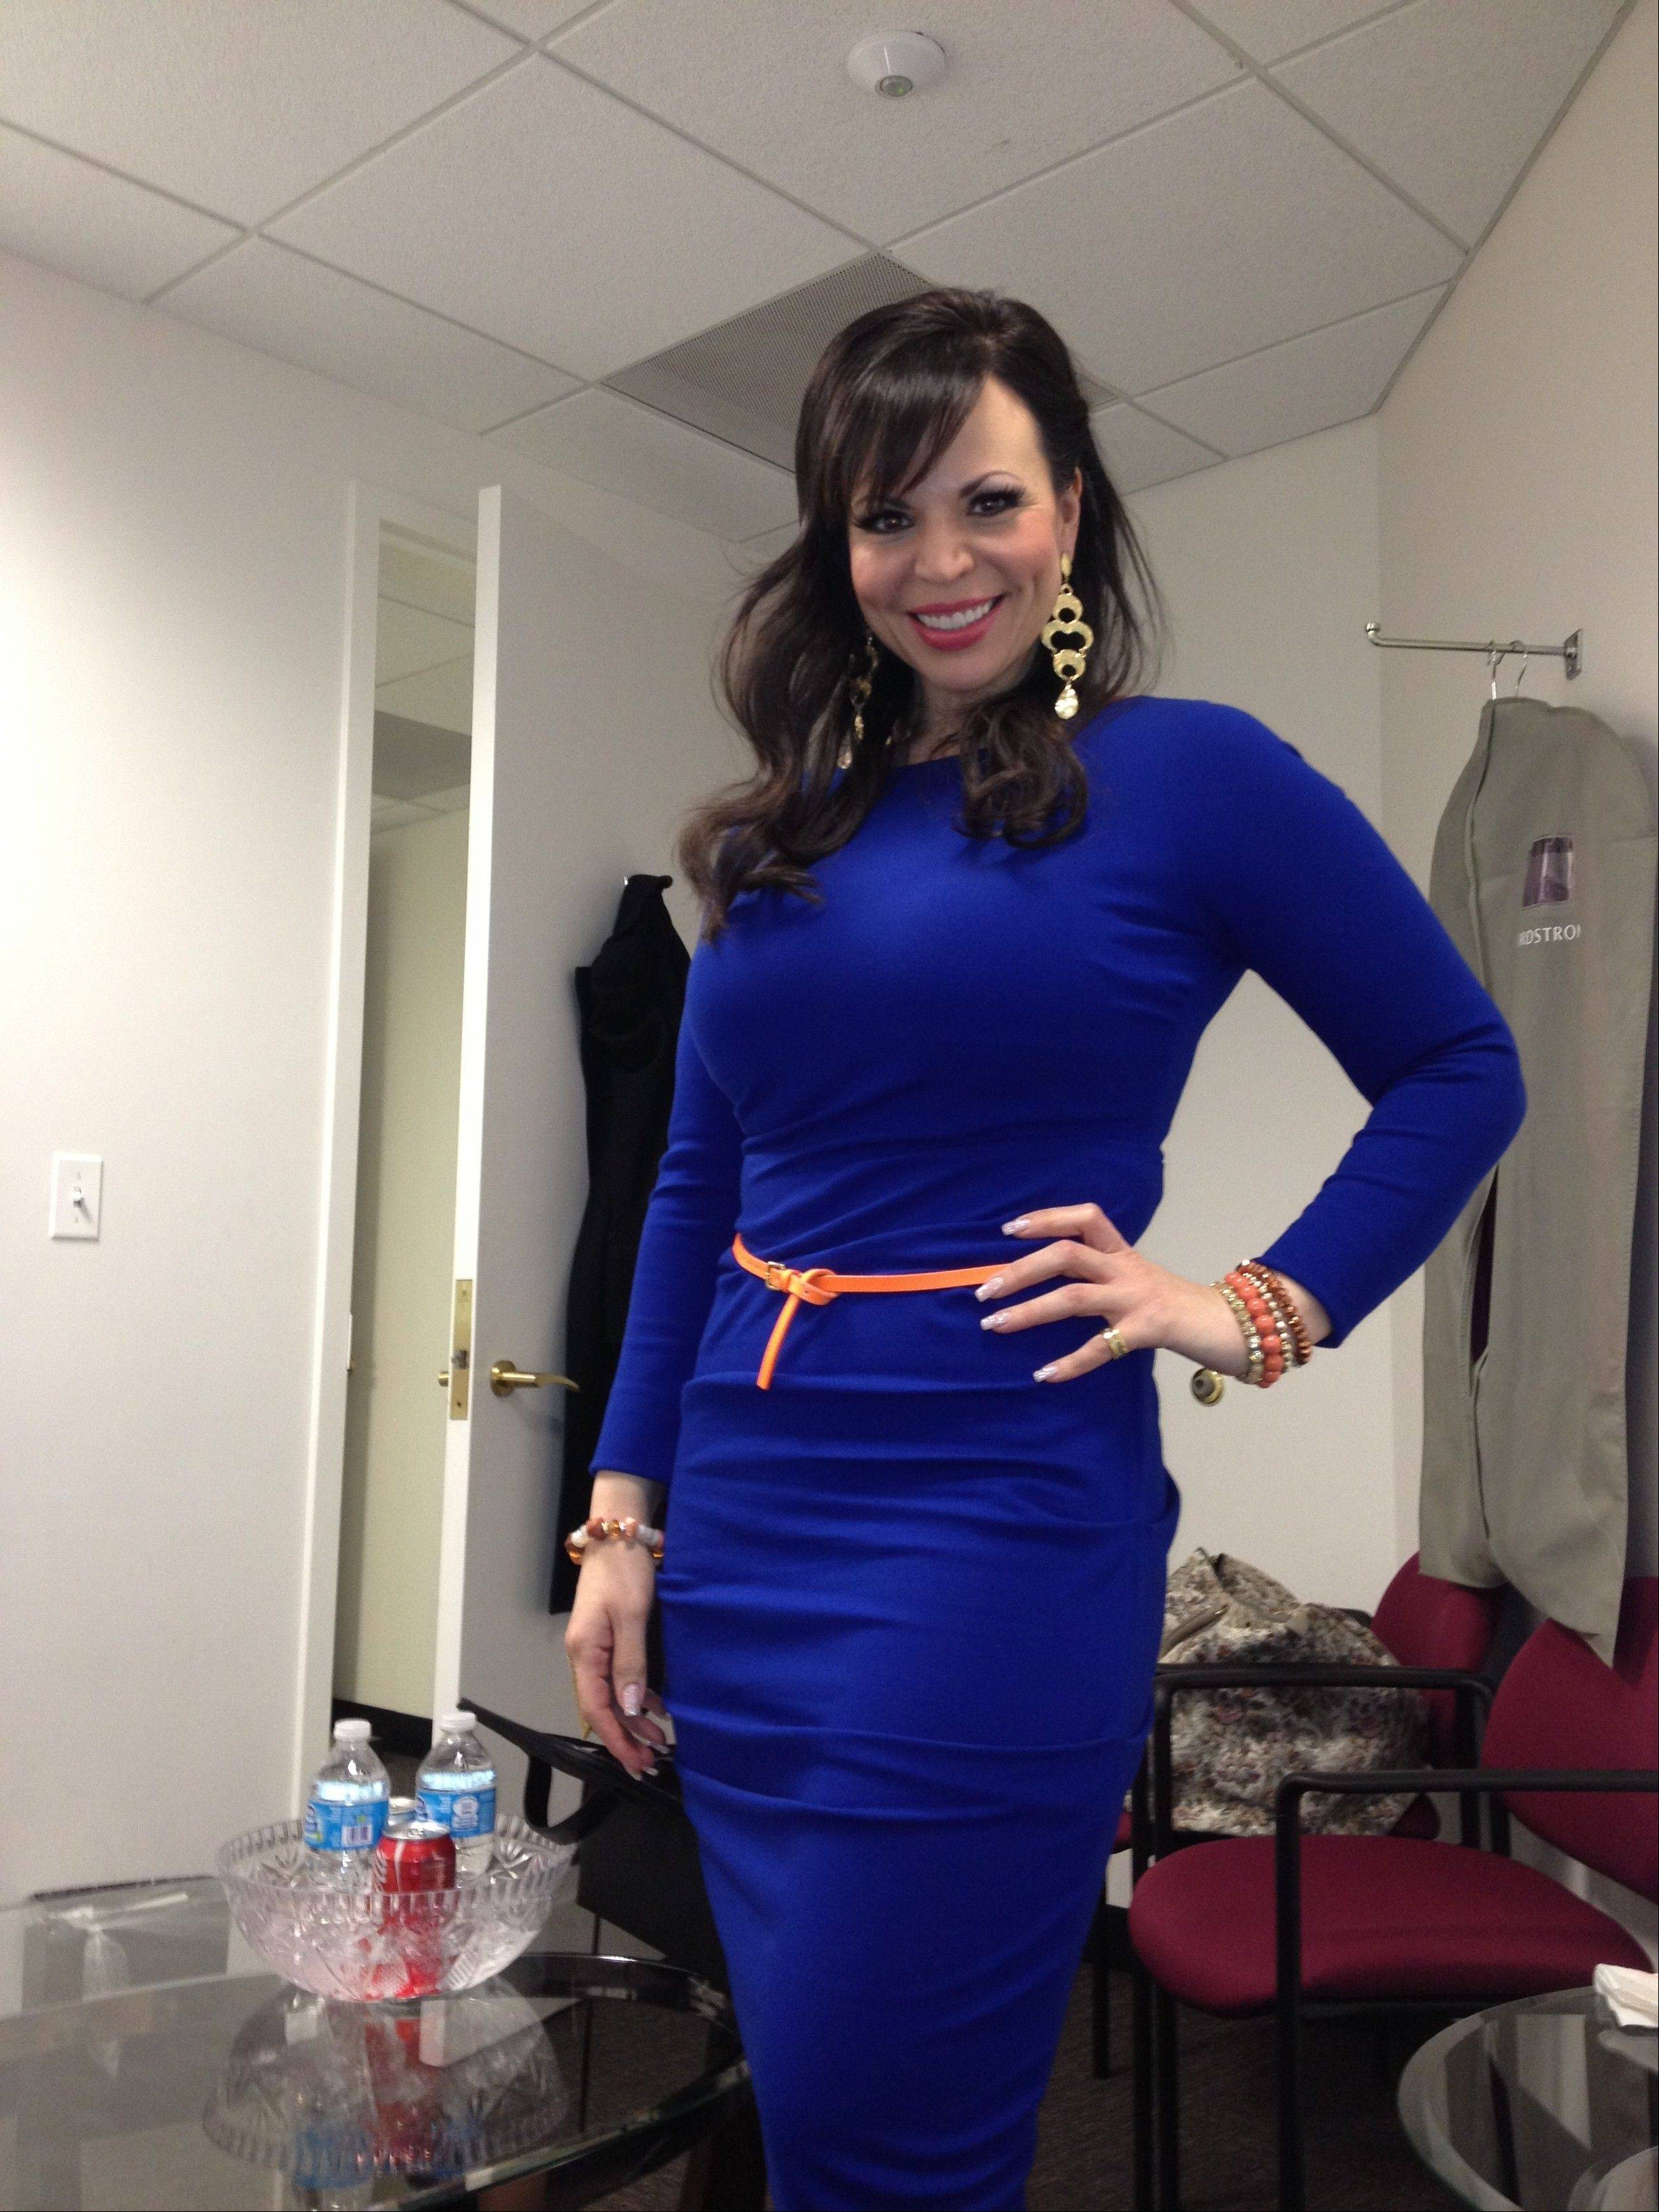 In the green room preparing for her TV gig on the Steve Harvey show, Renee Trikolas says dating as a single mom all revolves around what is best for her kids.